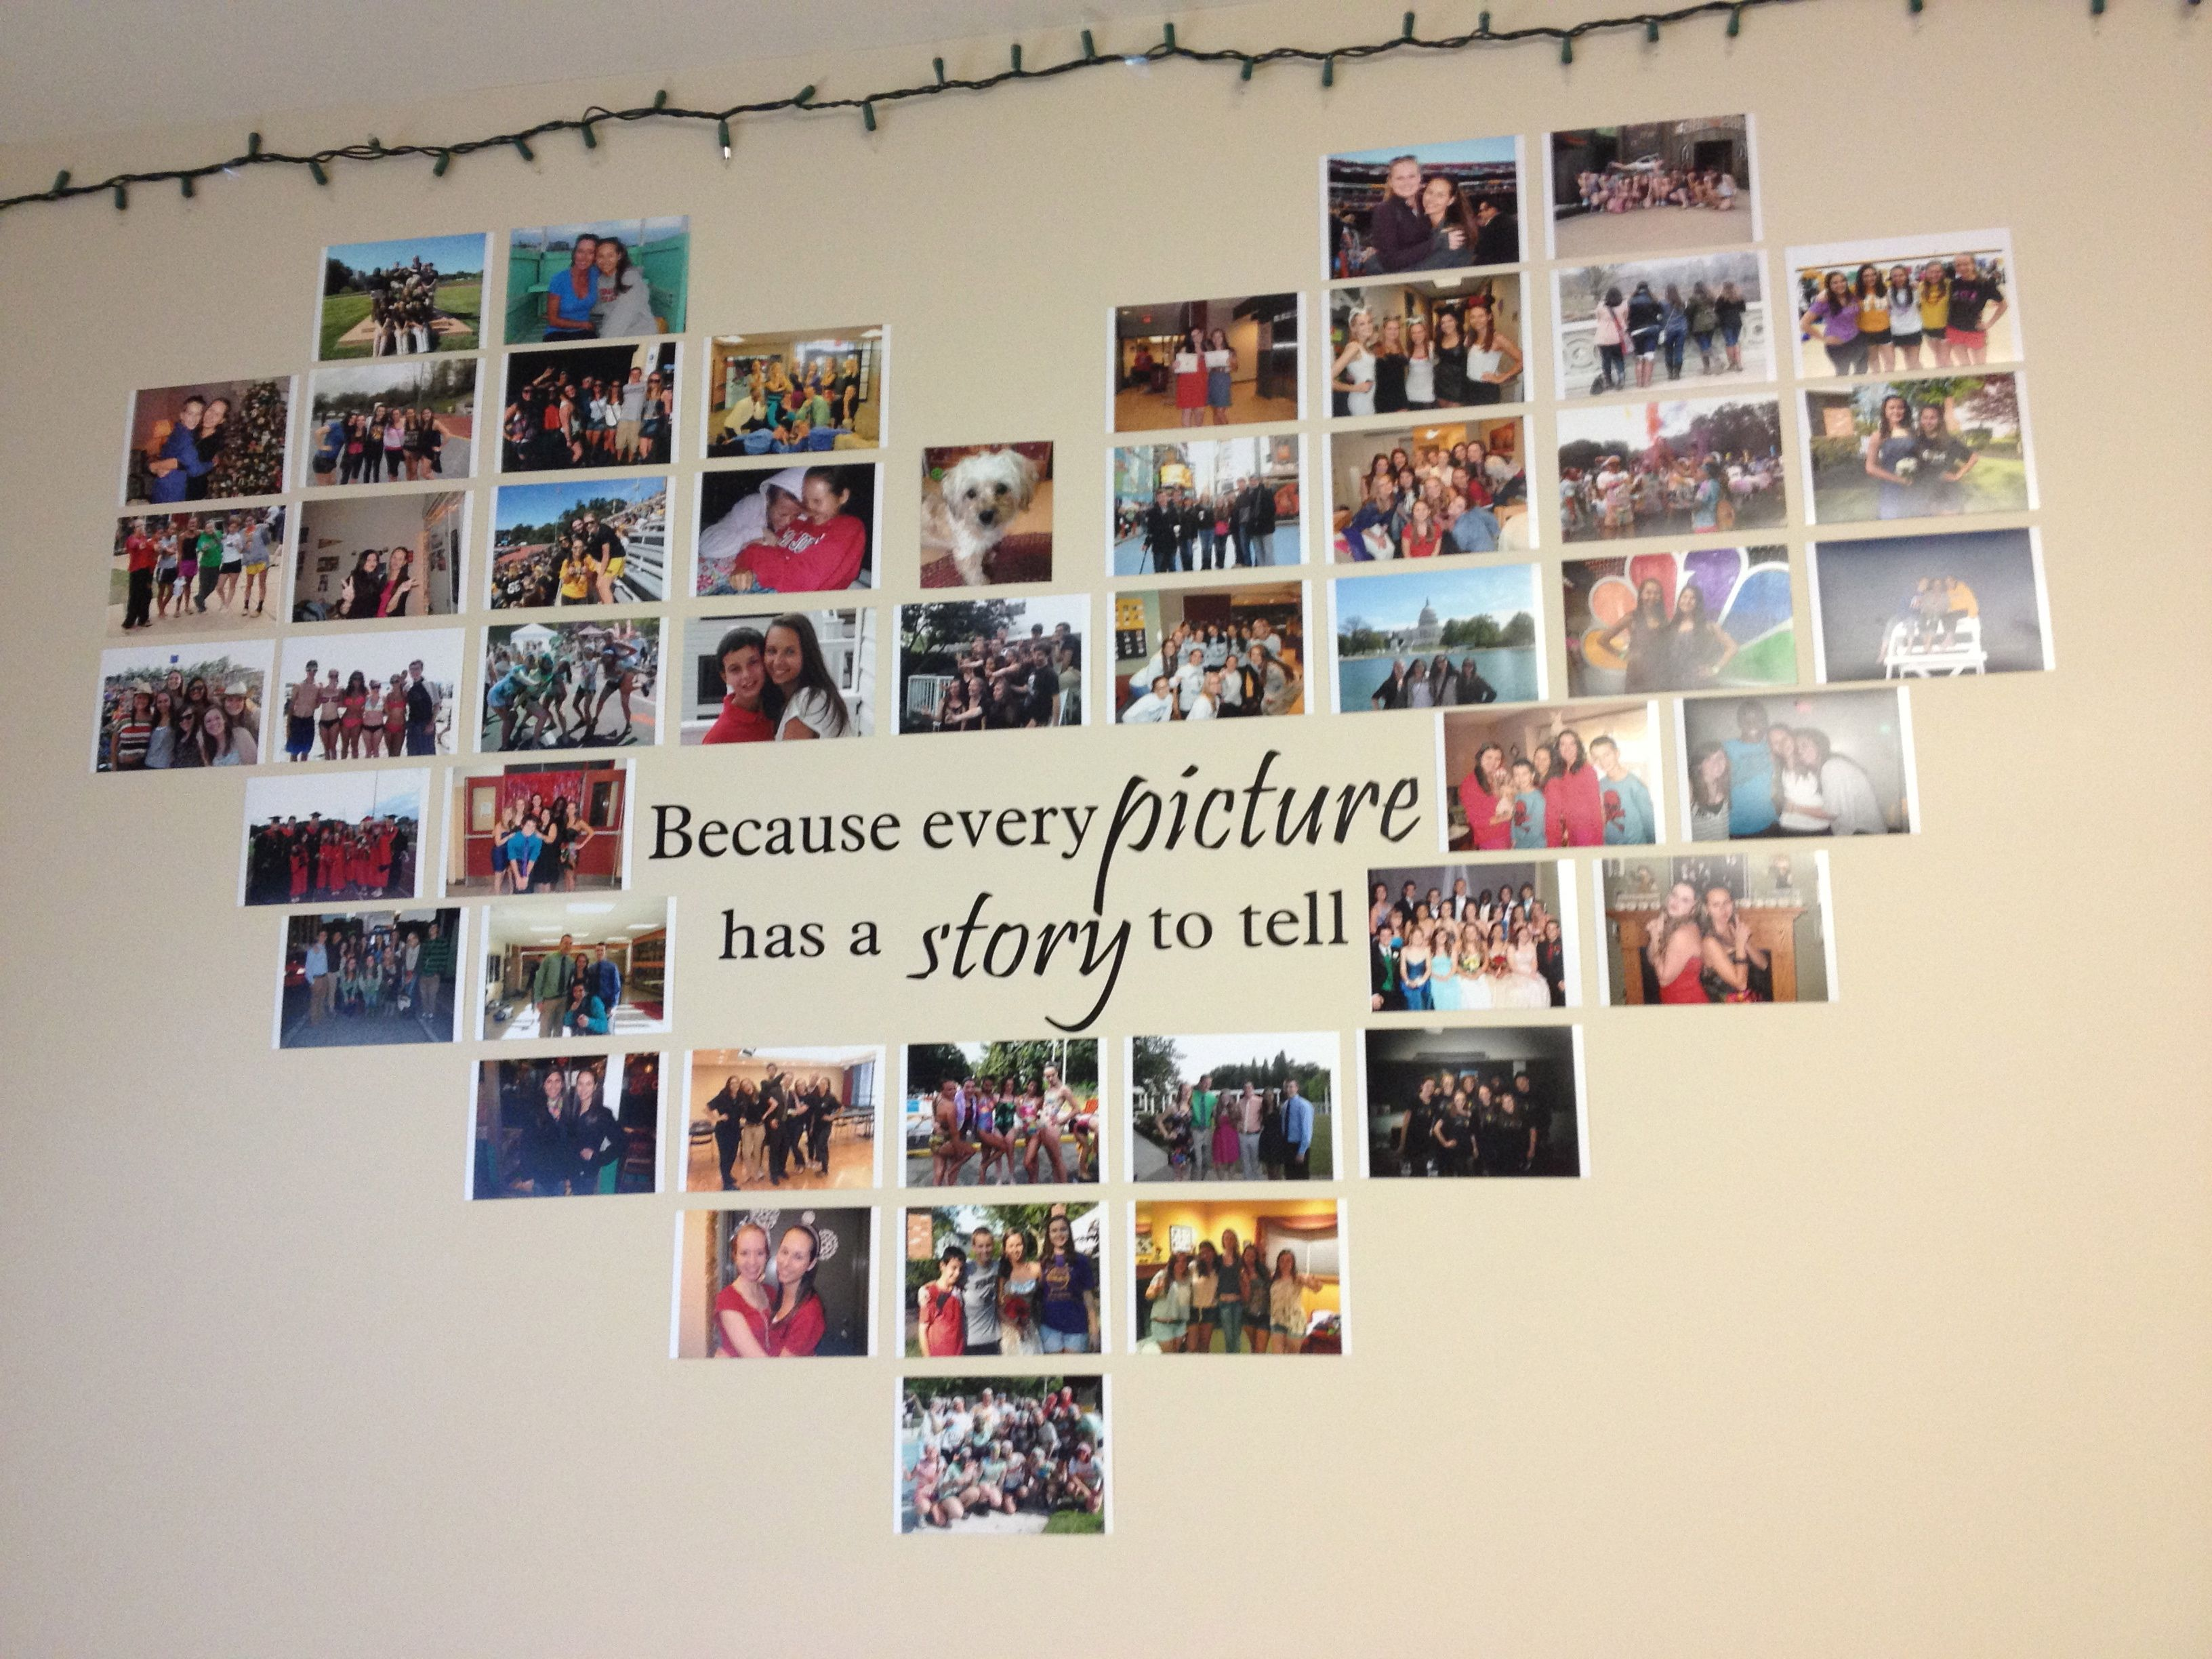 Montage Photo Cadre Multiple Heart Photo Collage With A Quote In The Middle Quote Decal From